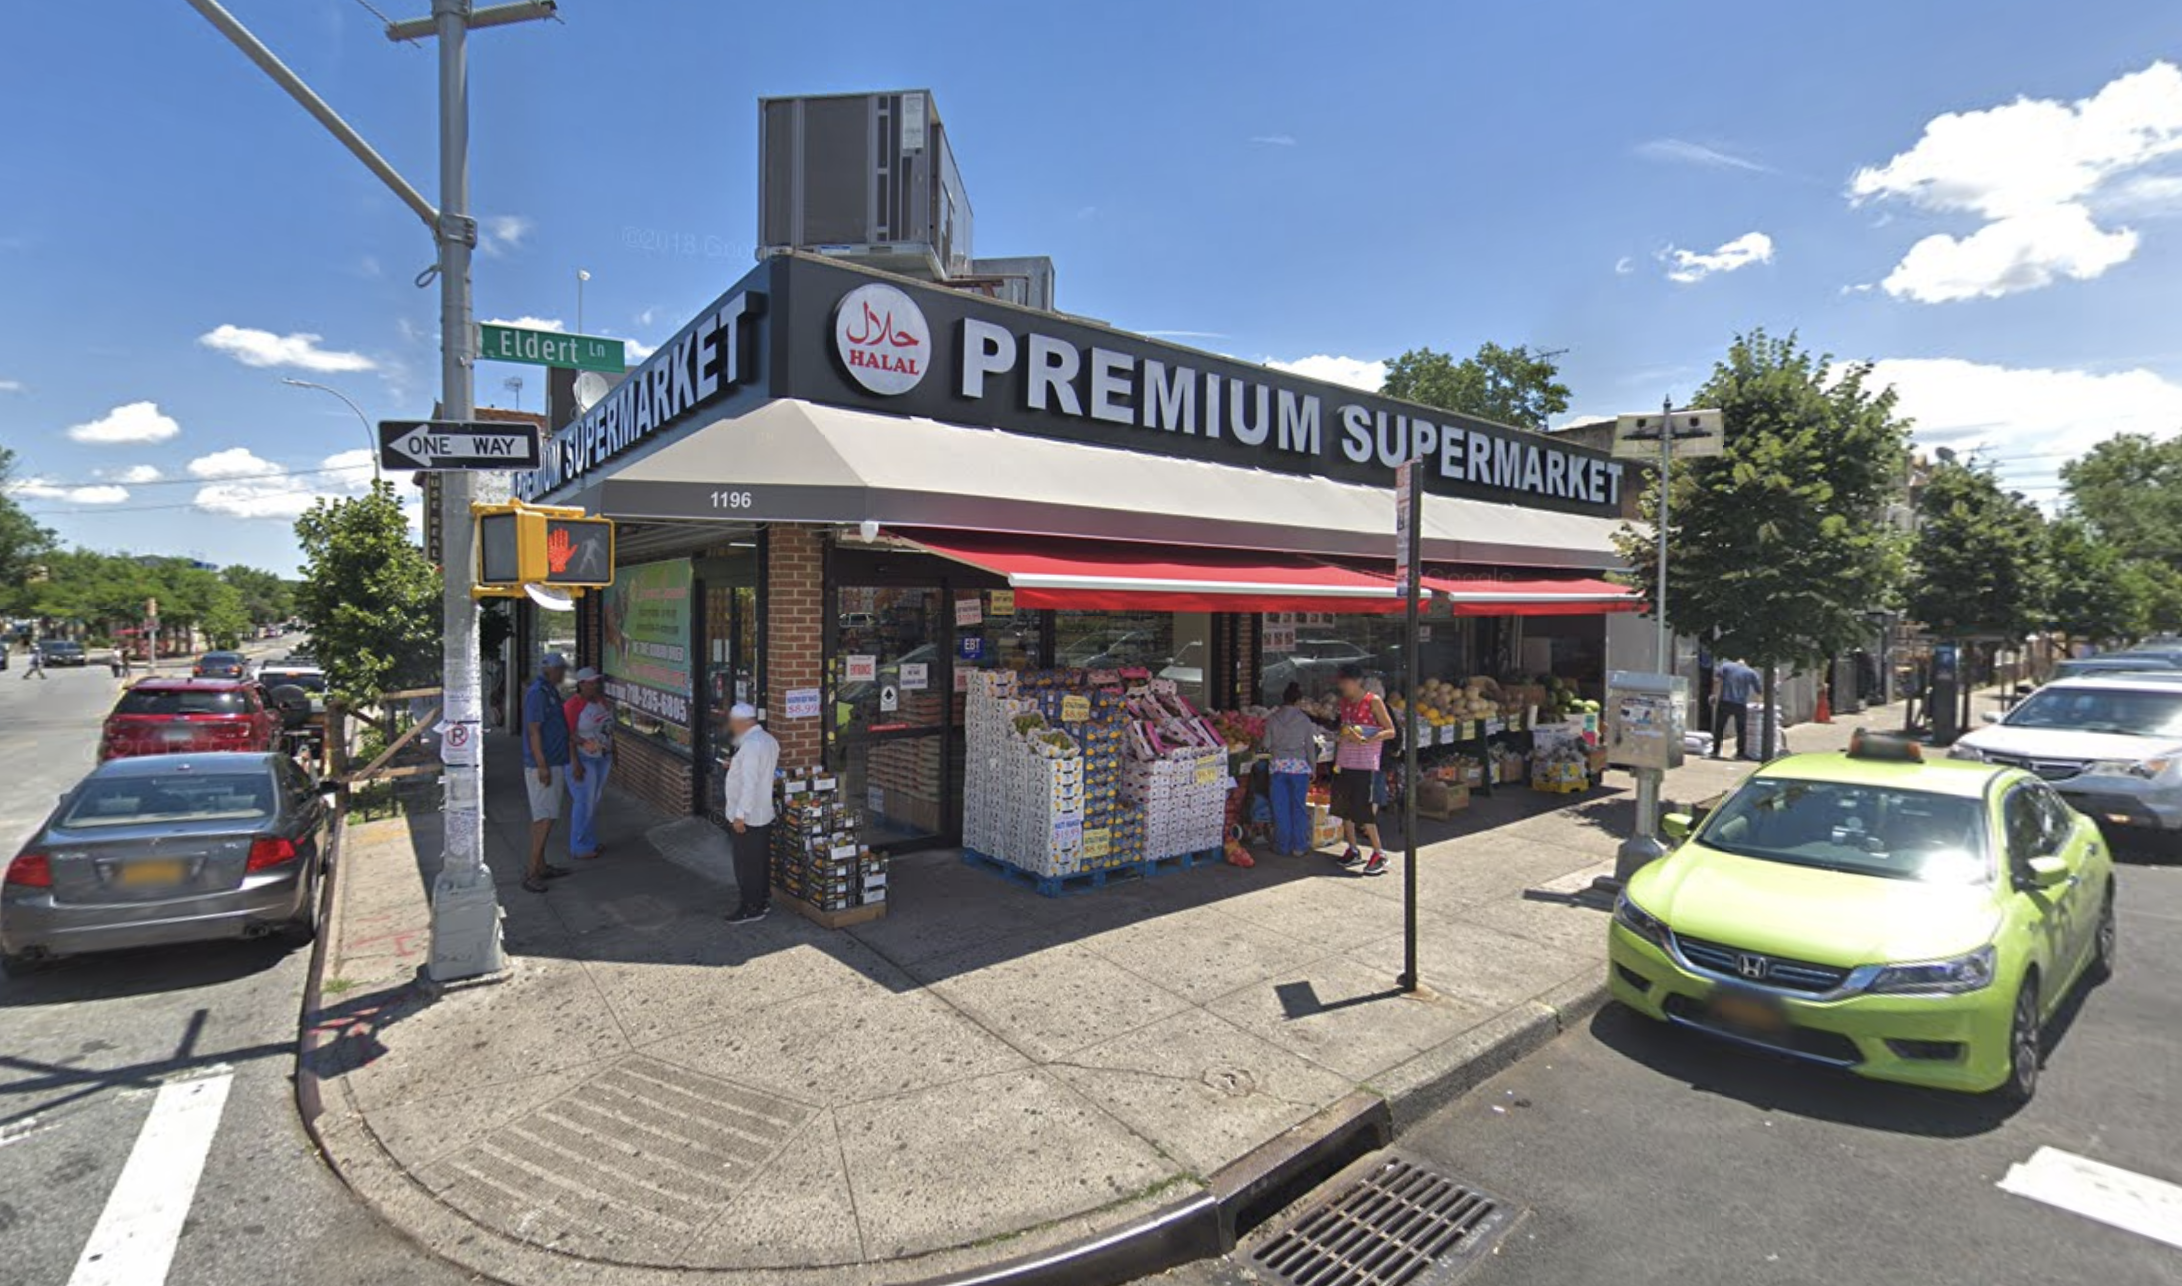 Manumar Khan allegedly set fire to Premium Supermarket in East New York. Photo via Google Maps